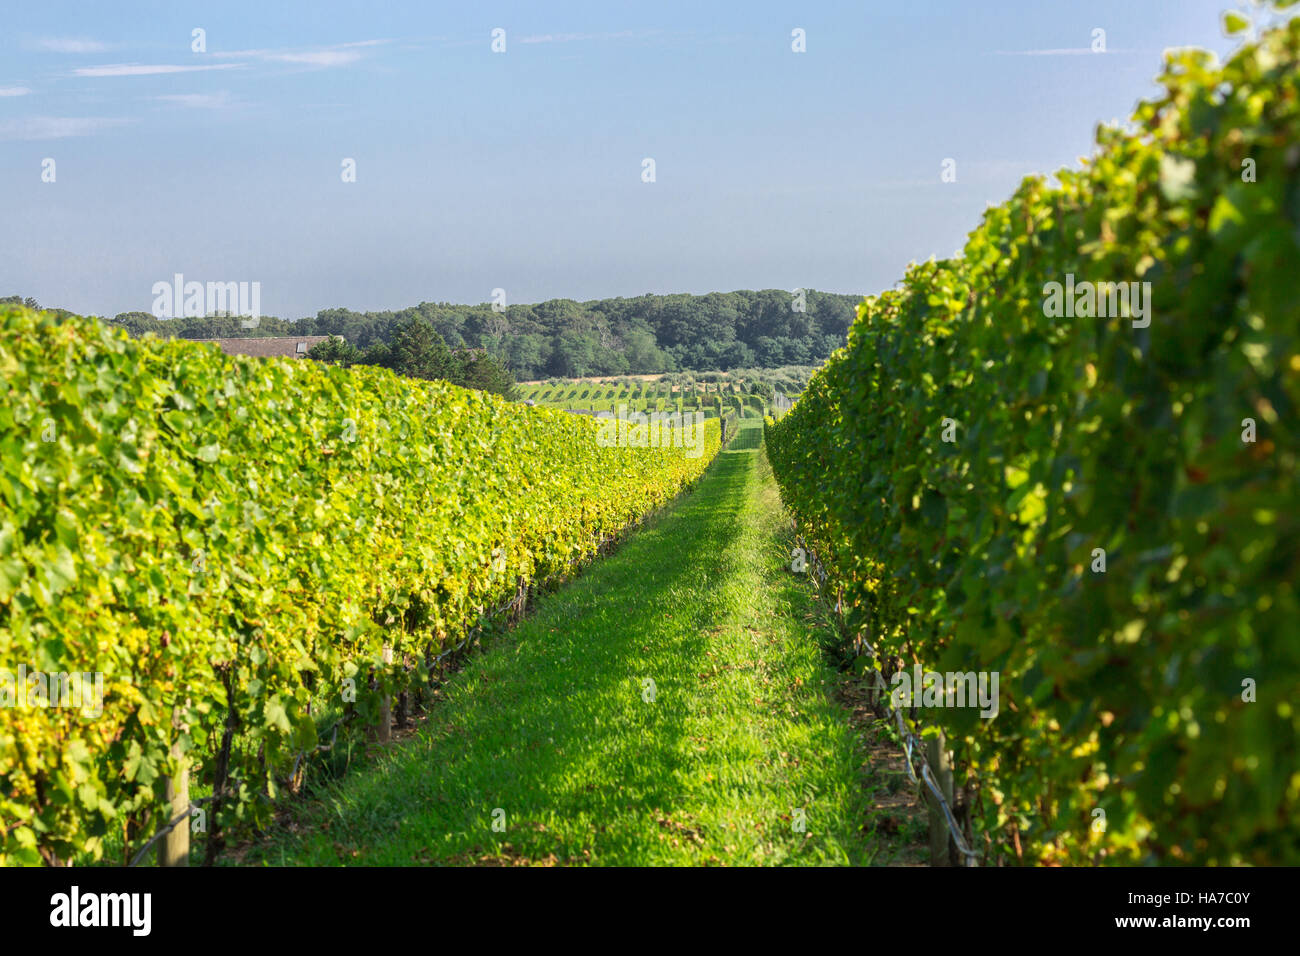 wine vineyard in Eastern Long Island with grapes on the vine - Stock Image